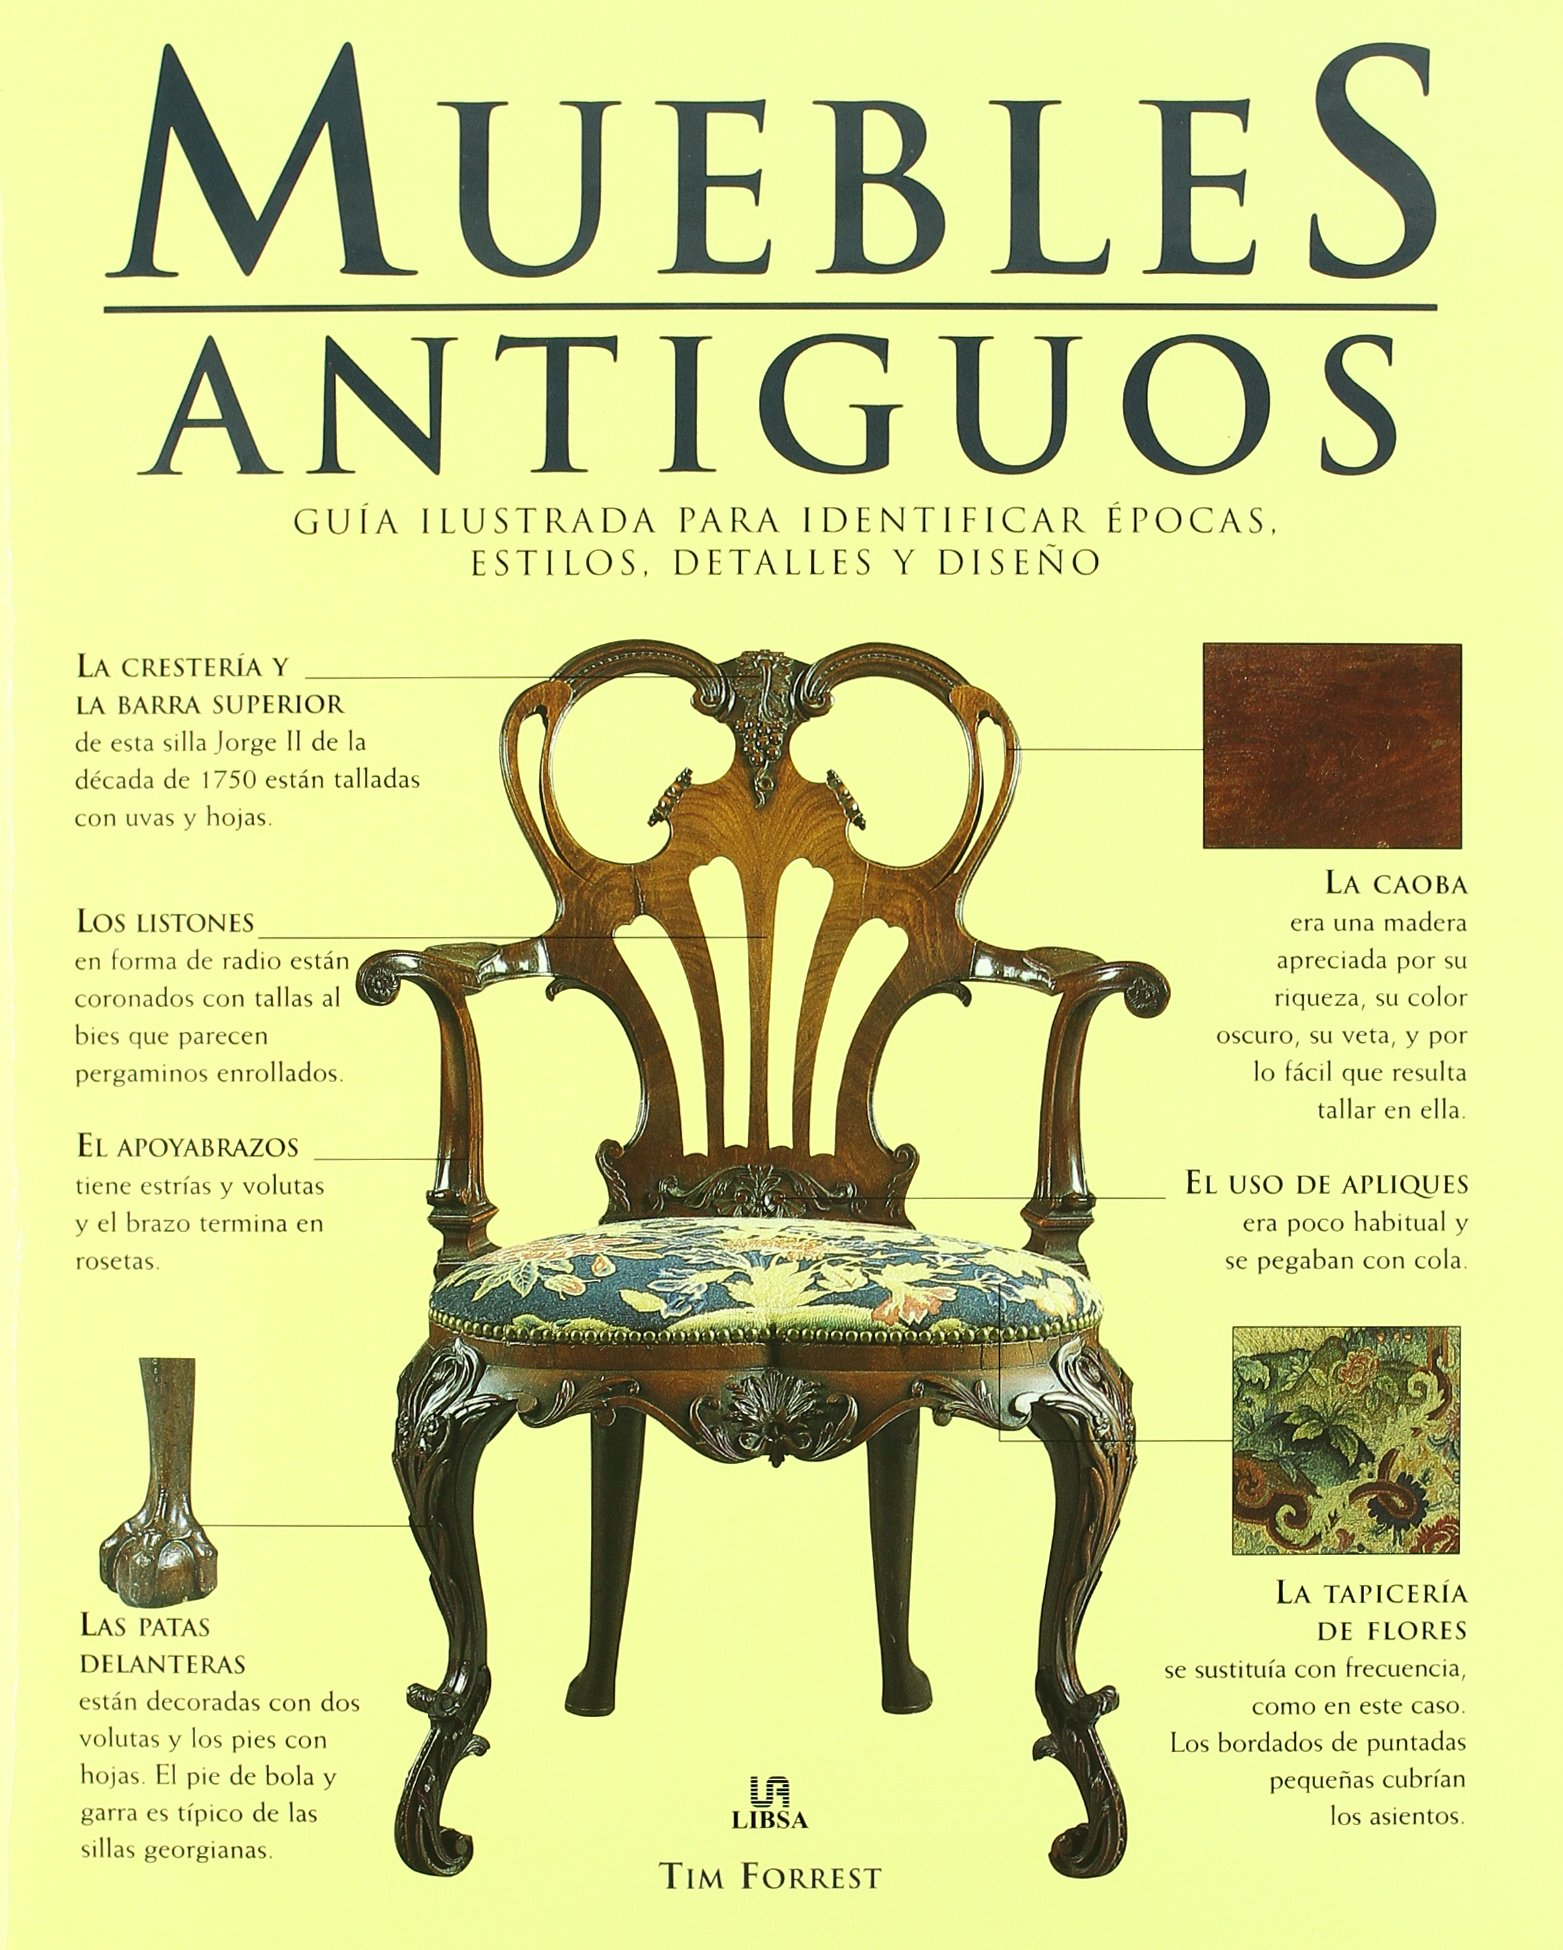 Muebles antiguos / Antique Furniture: Guia ilustrada para identificar epocas, estilos, detalles y diseno / Illustrated Guide to Identify Periods, Styles, ...